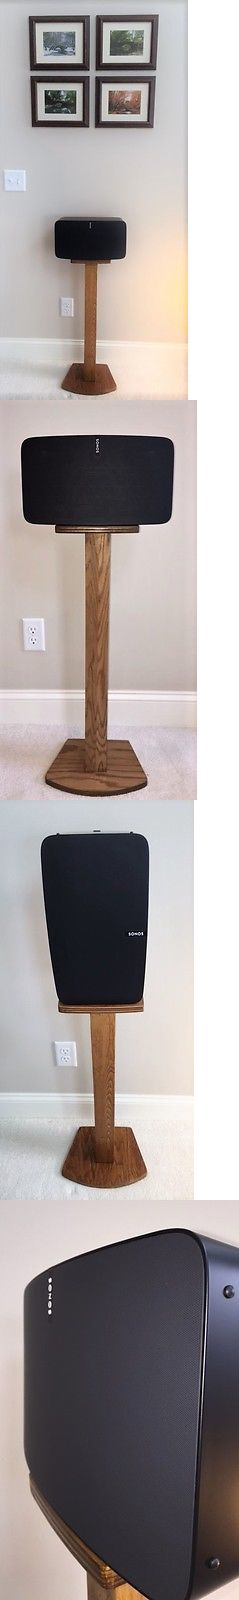 Speaker Mounts and Stands: Beautiful Oak Wood Single Speaker Stand Handcrafted For Sonos Play 5 (2Nd Gen) -> BUY IT NOW ONLY: $67.5 on eBay!